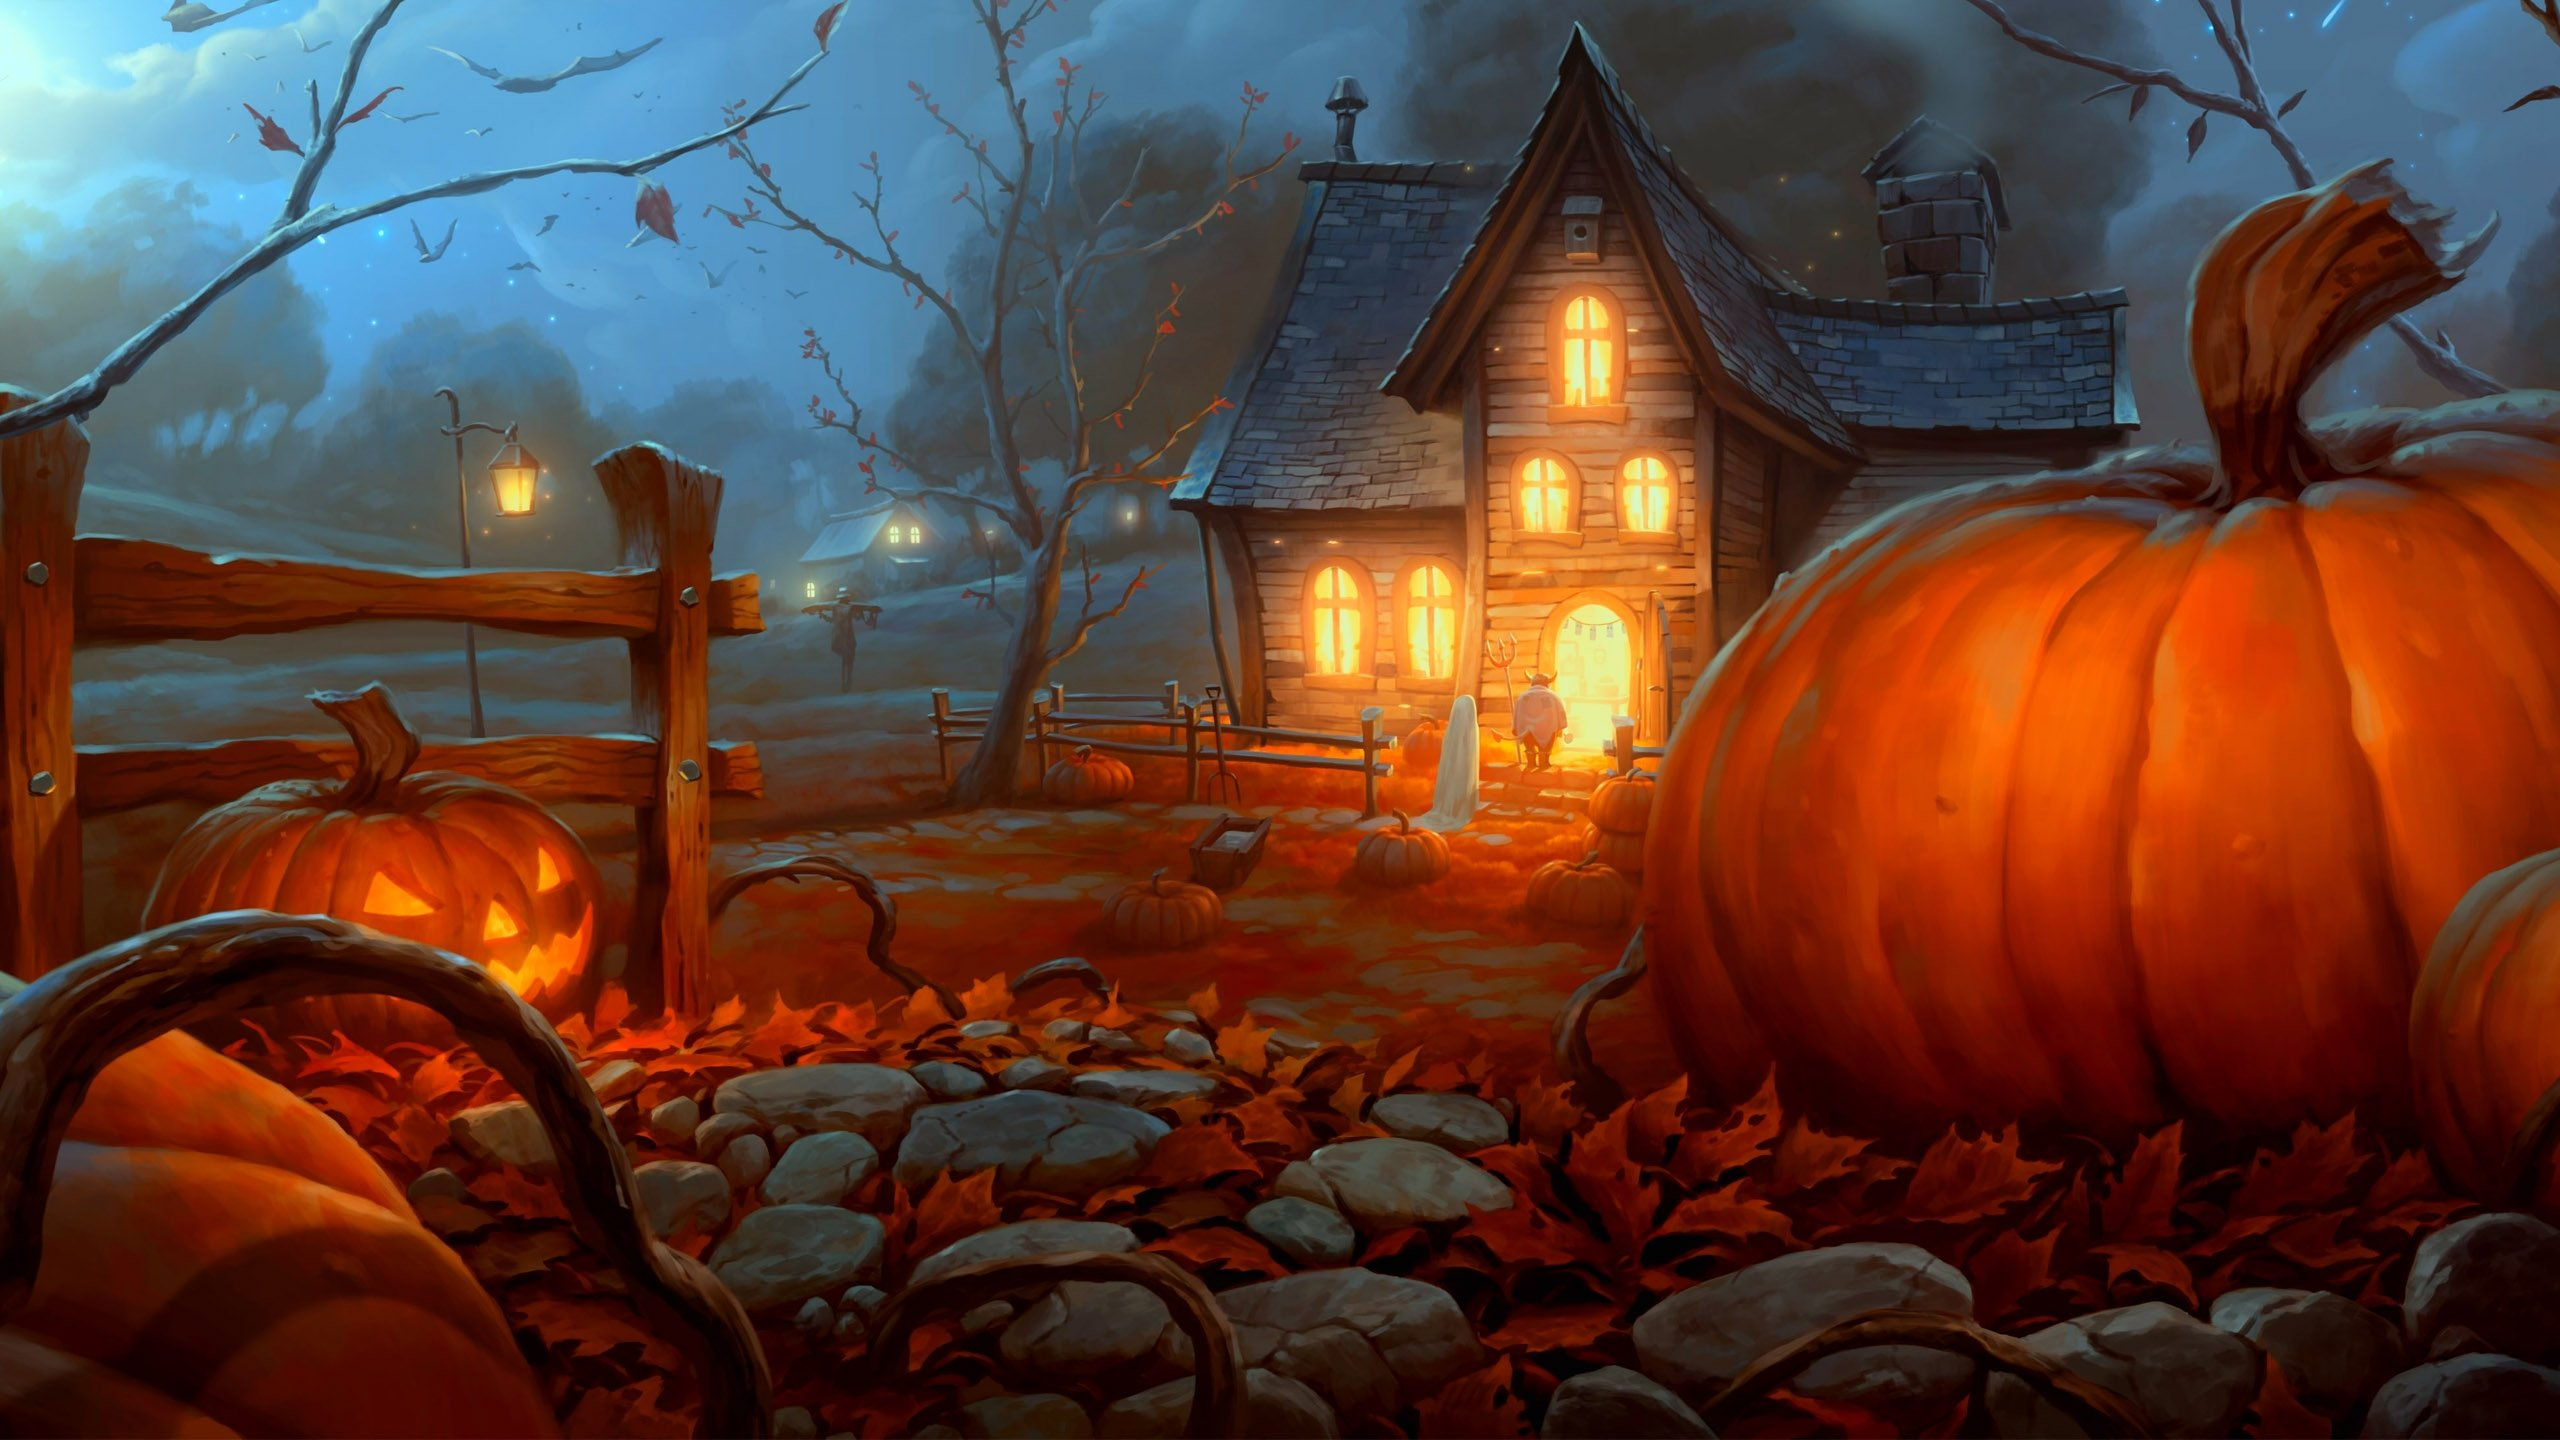 Pin Halloween 3d Desktop Wallpaper on Pinterest